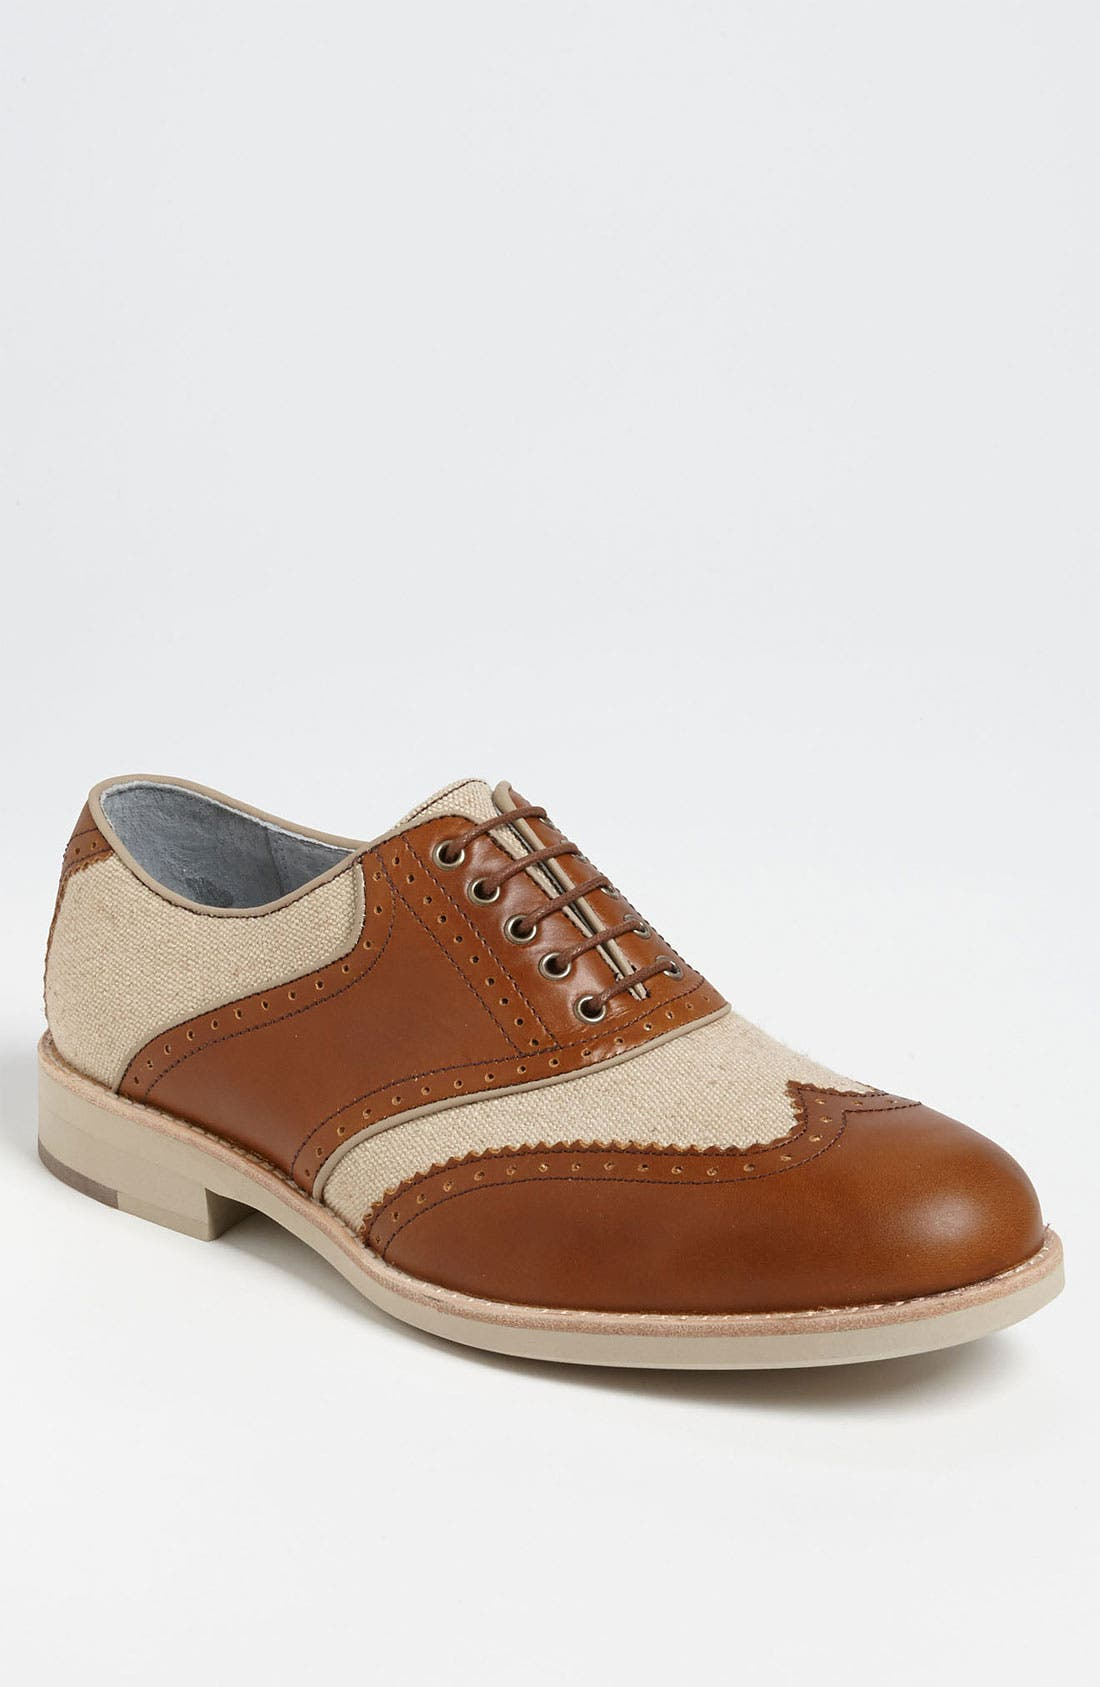 Main Image - Johnston & Murphy 'Ellington' Spectator Shoe